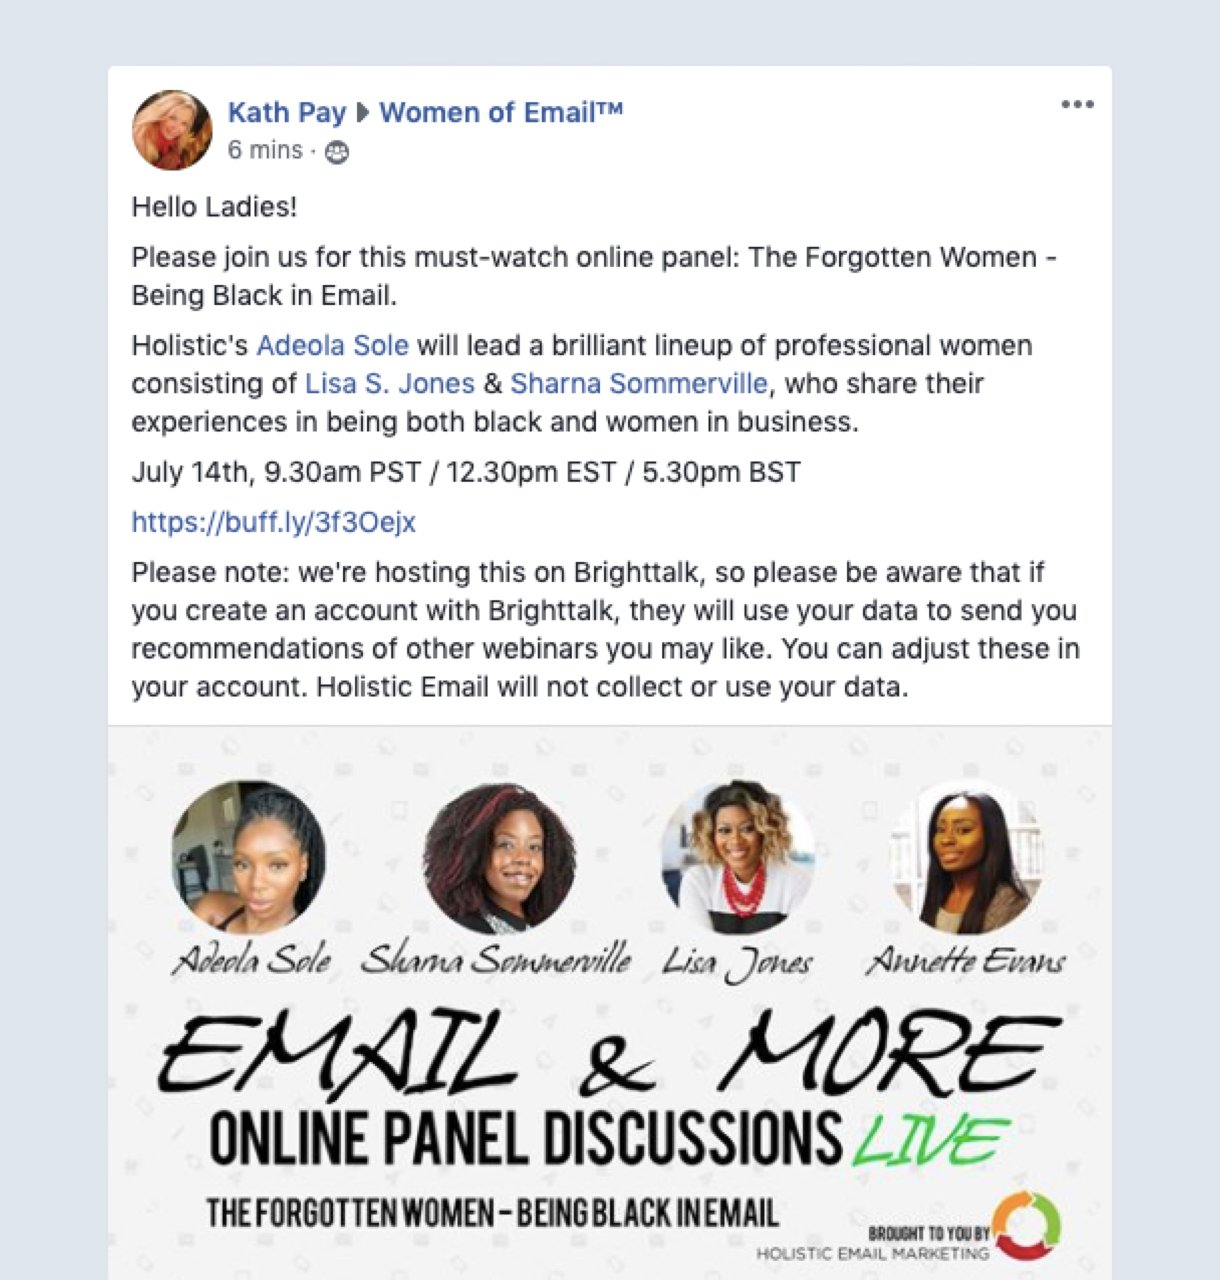 Facebook group webinar promotion example by women of email